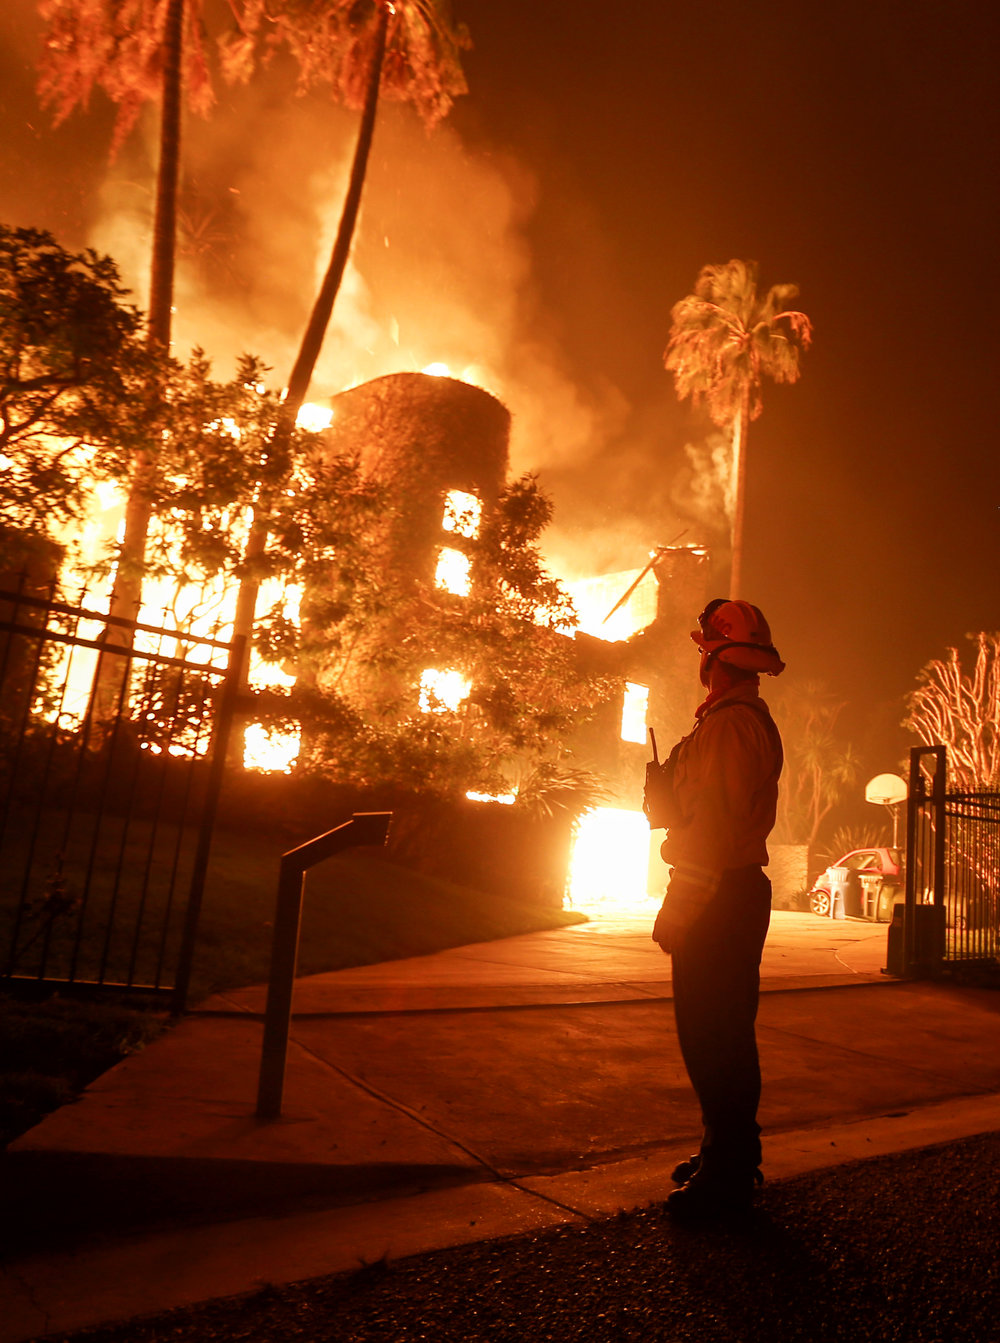 A firefighter keeps watch the Woolsey fire burning a home in Malibu, Calif., Friday, Nov. 9, 2018.